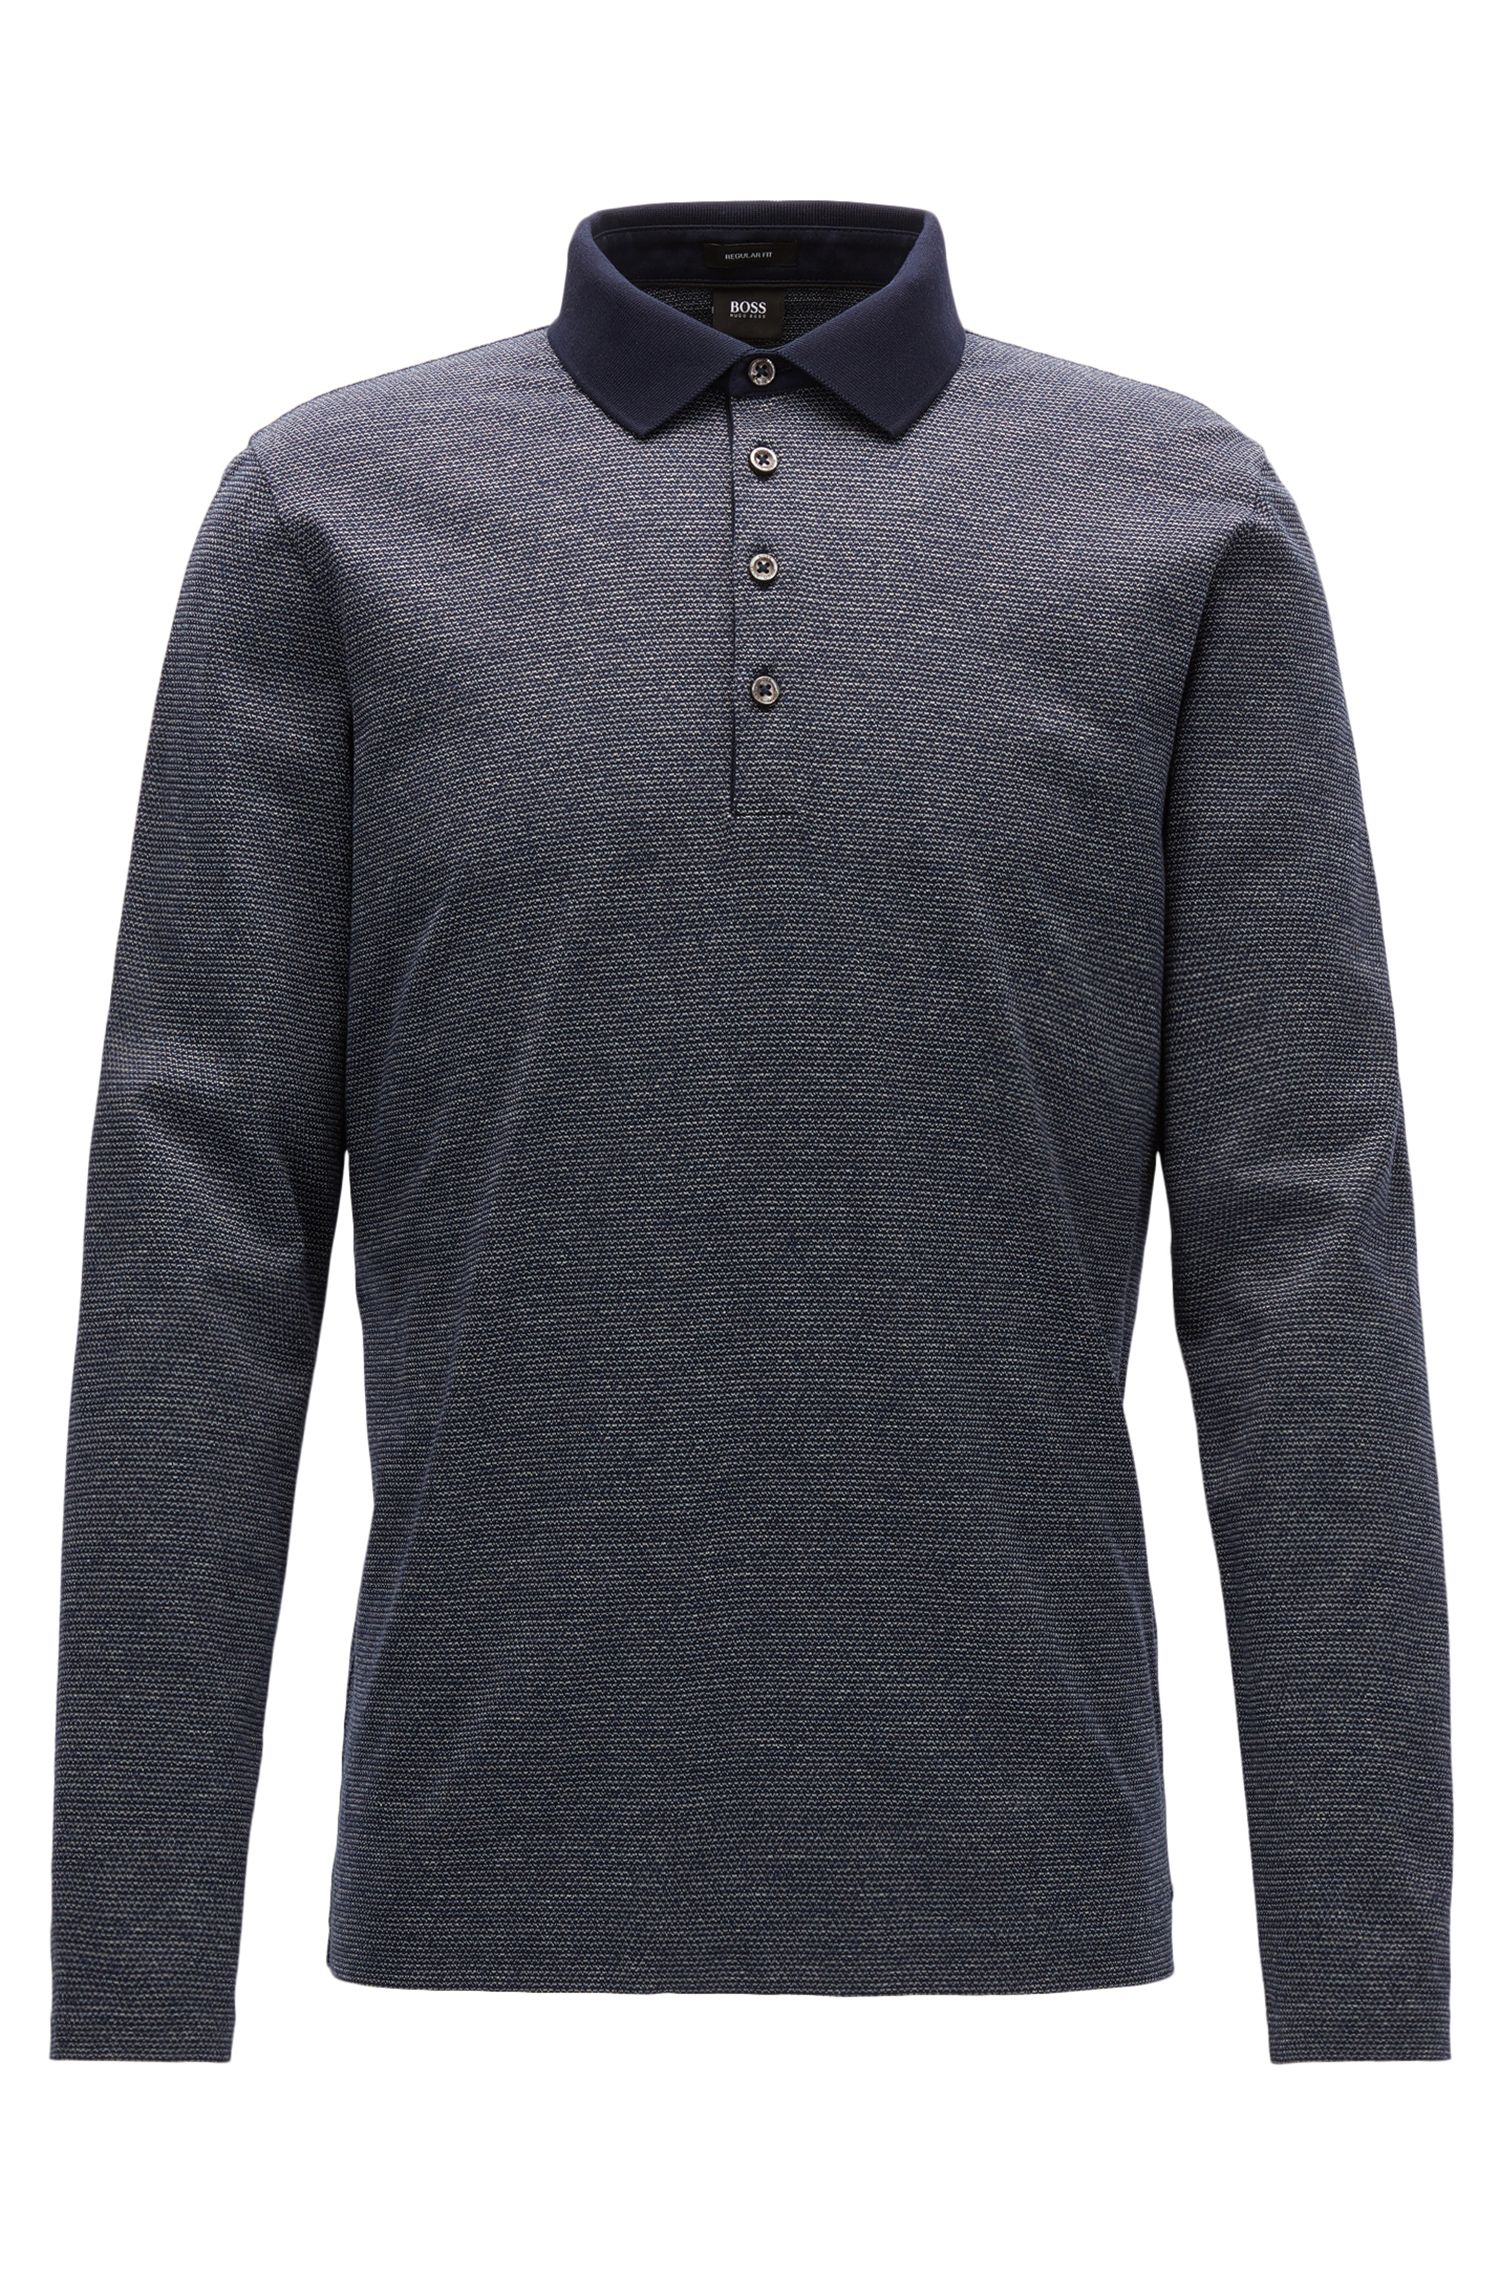 Regular-fit micro-pattern polo shirt in mercerised mouliné cotton